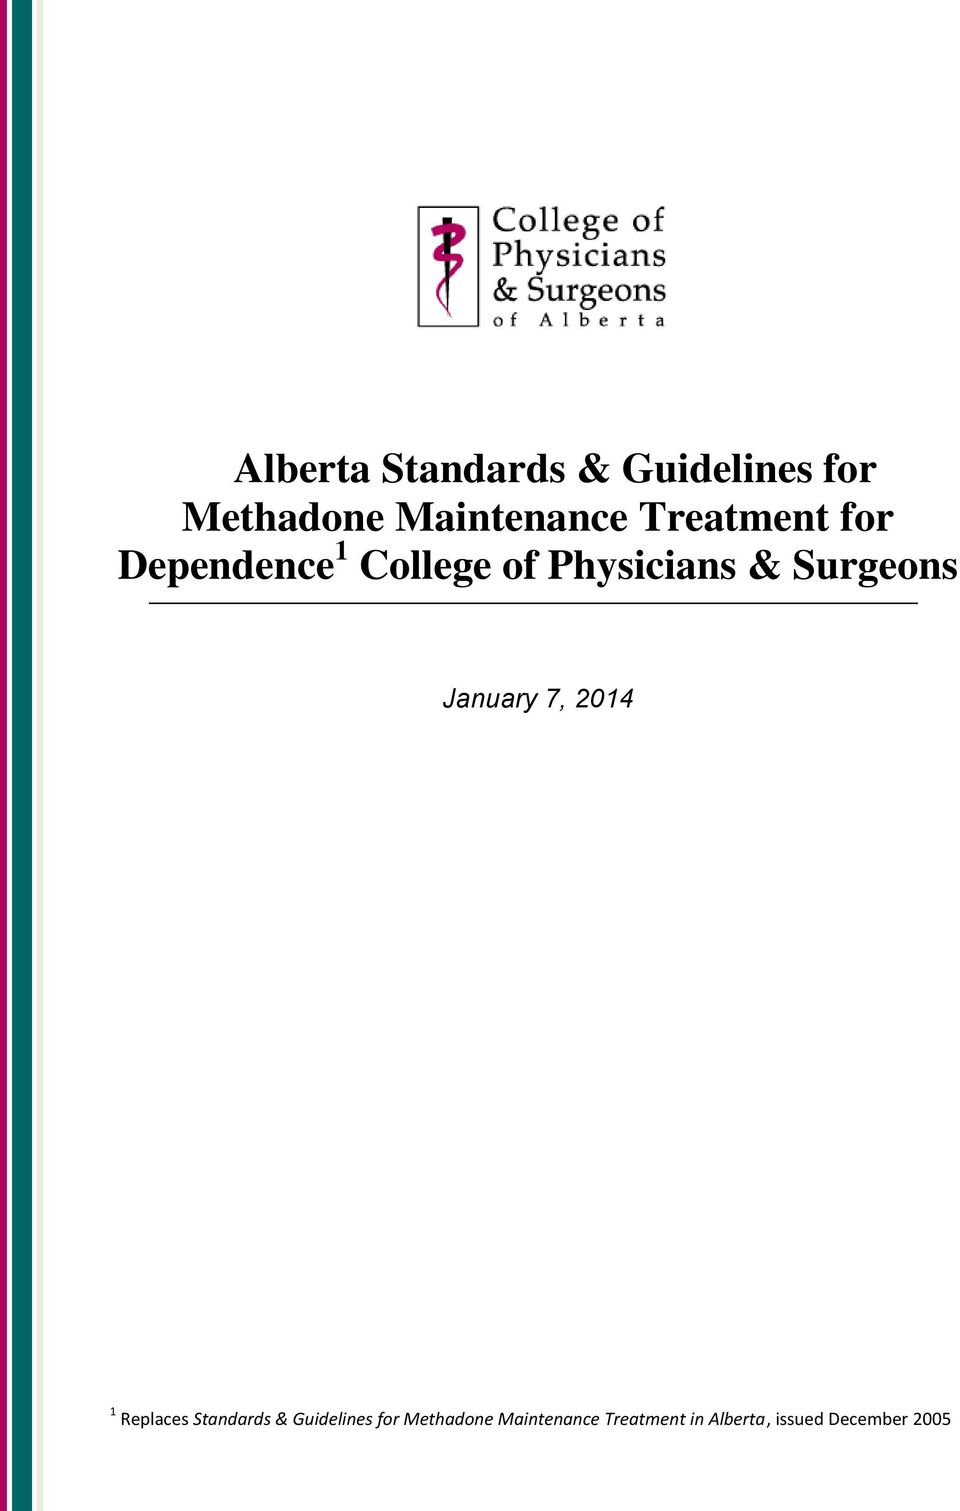 Alberta January 7, 2014 2013 1 Replaces & Guidelines for